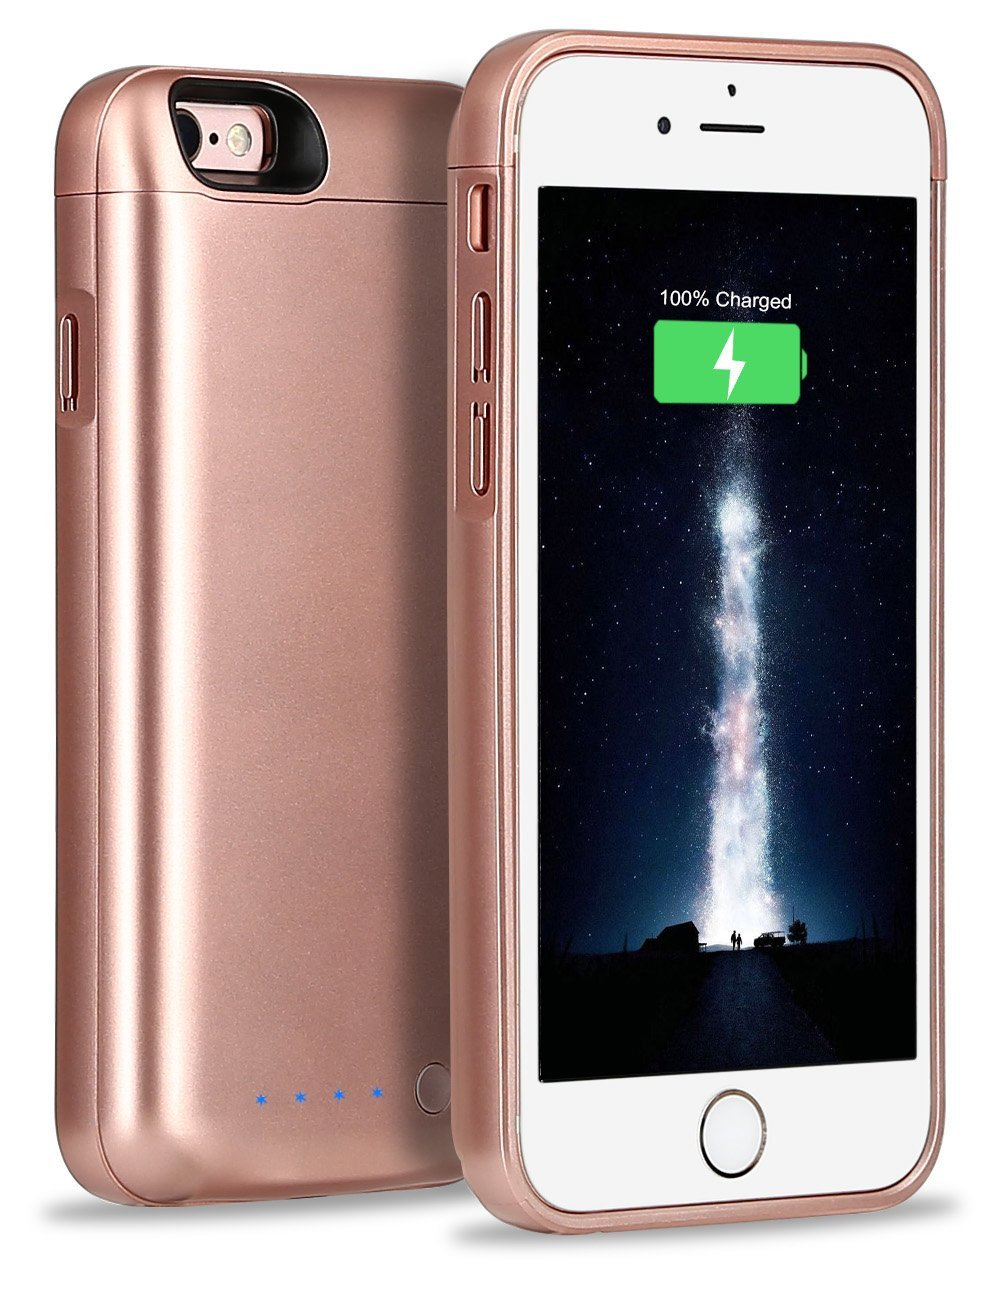 iPhone 6s Plus Battery Case, Higoo iPhone 6s Plus Portable Charger Case 8000mAh Rechargeable Extended Power Bank Rapid Charging Battery Backup 200% Extra Battery for iPhone 6S Plus/6 Plus Rose Gold